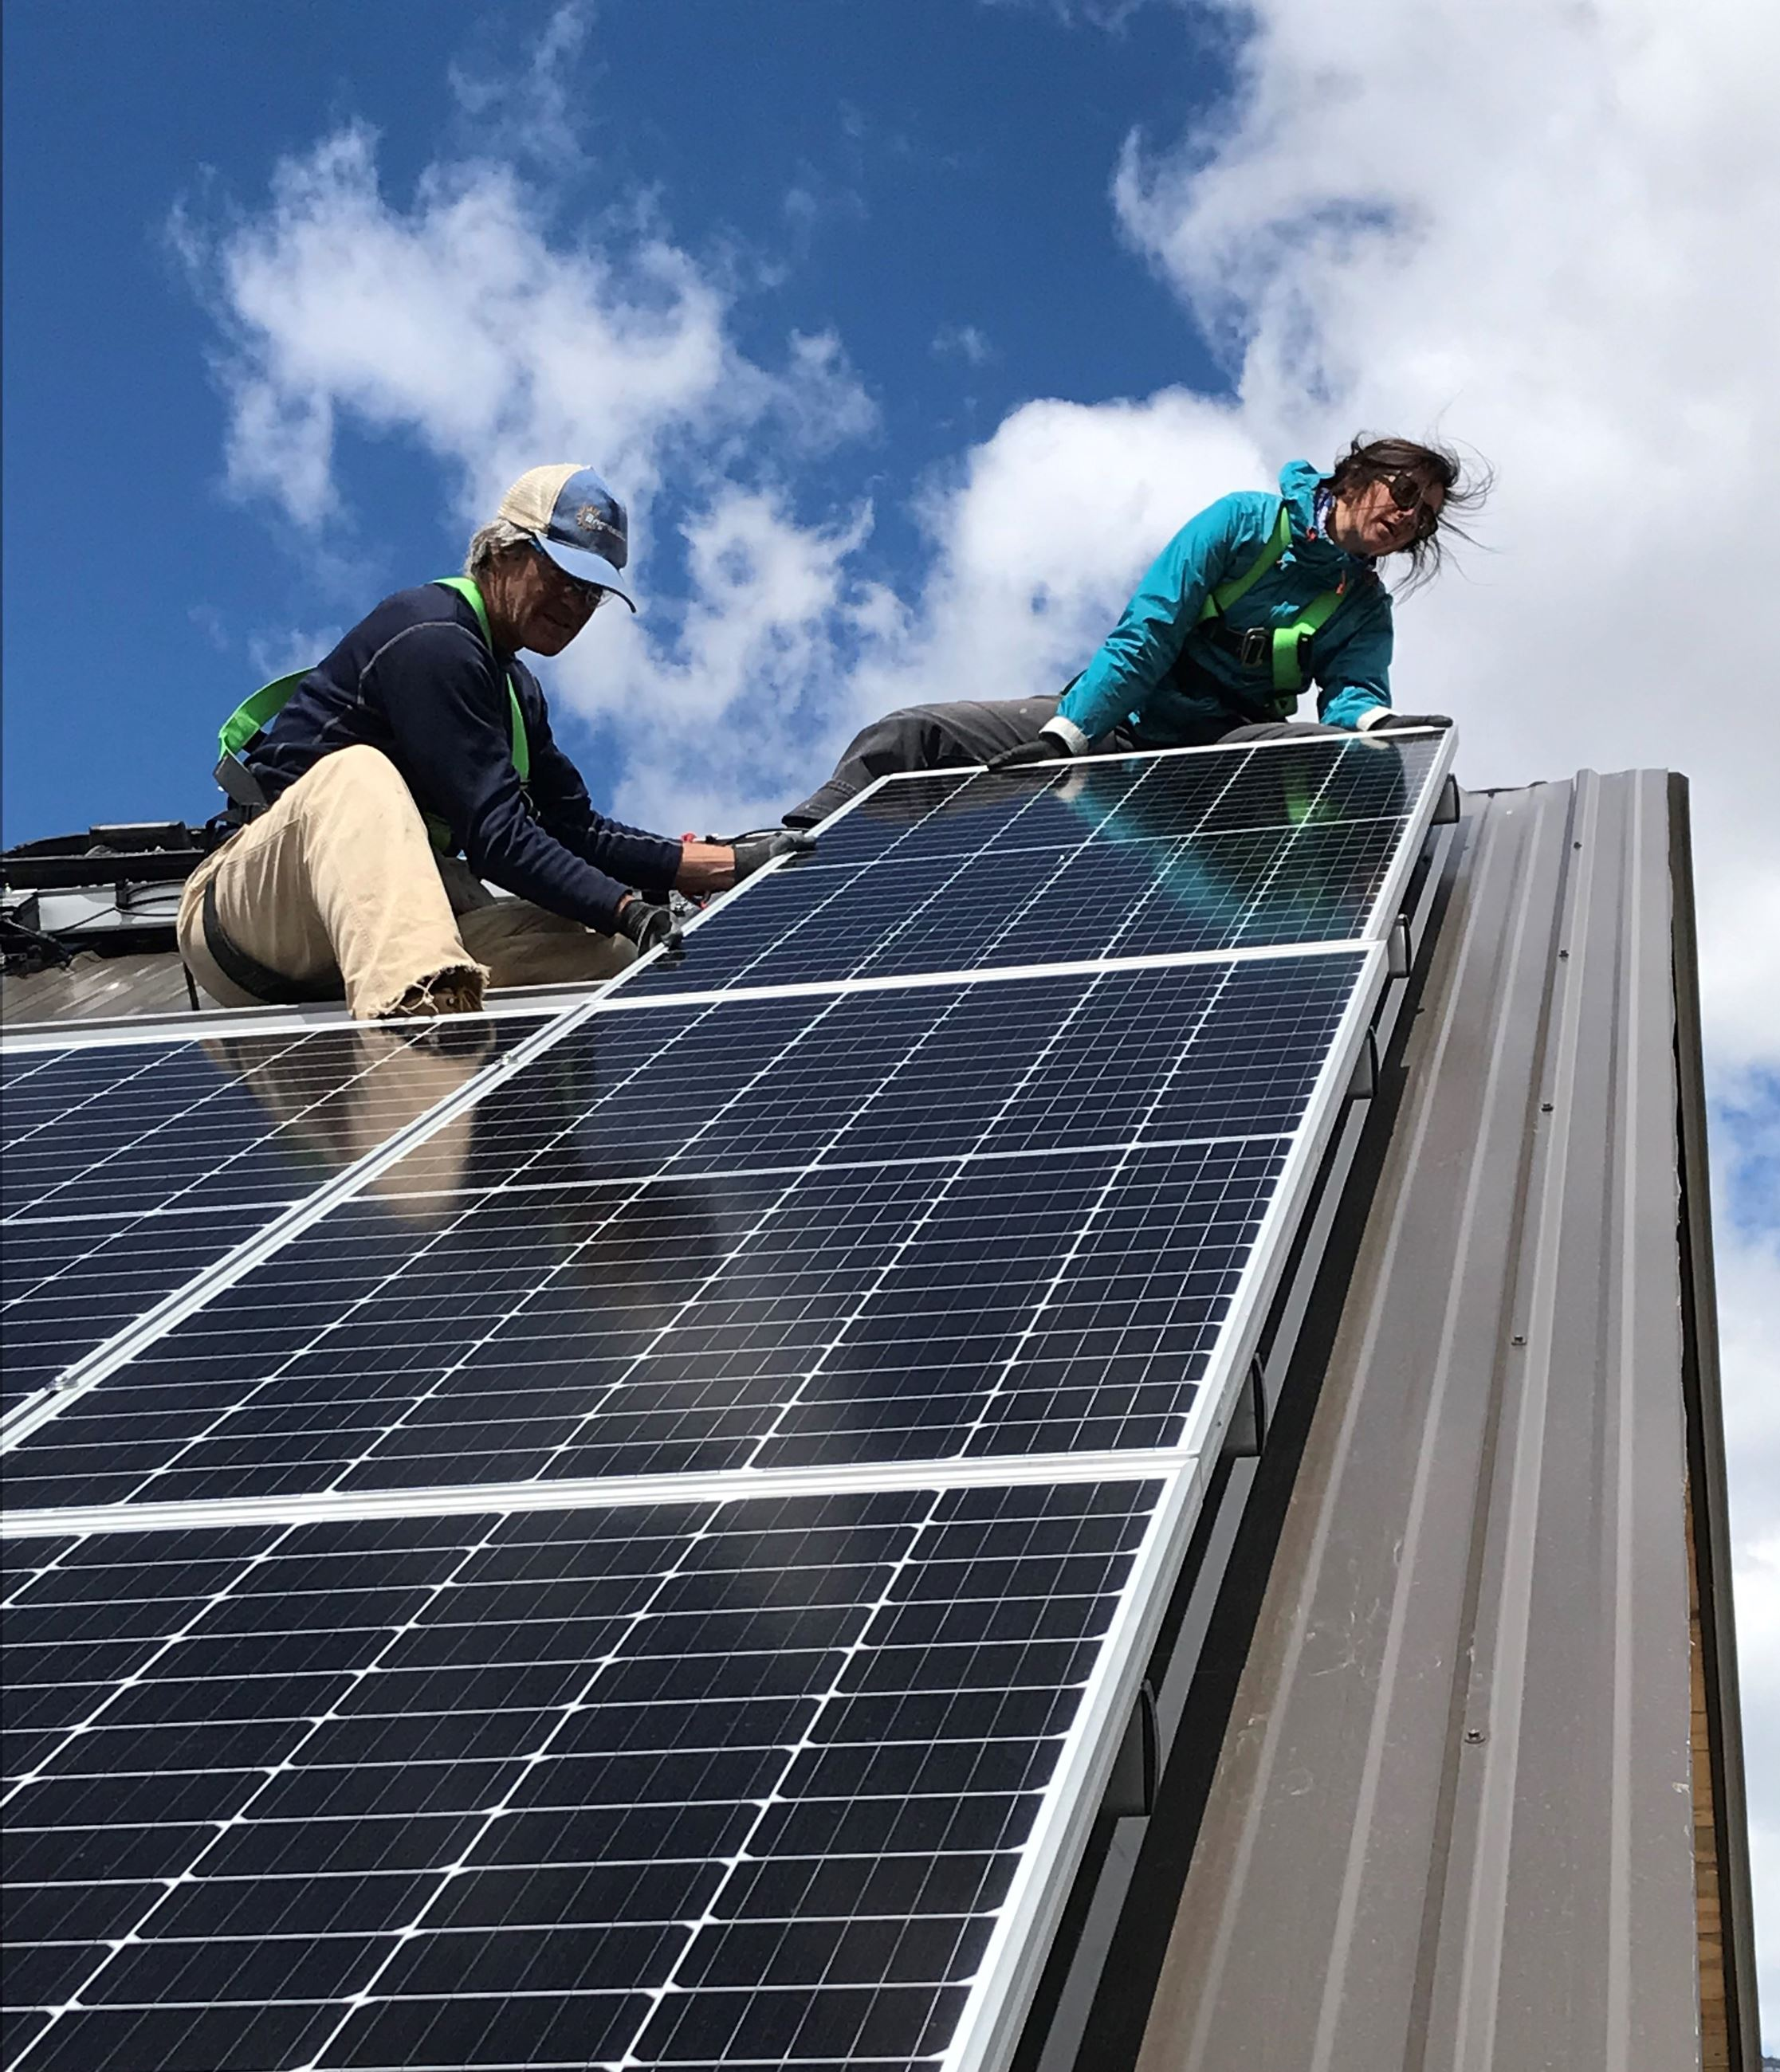 Solar install shot courtesy of Brightside Solar in Steamboat Springs